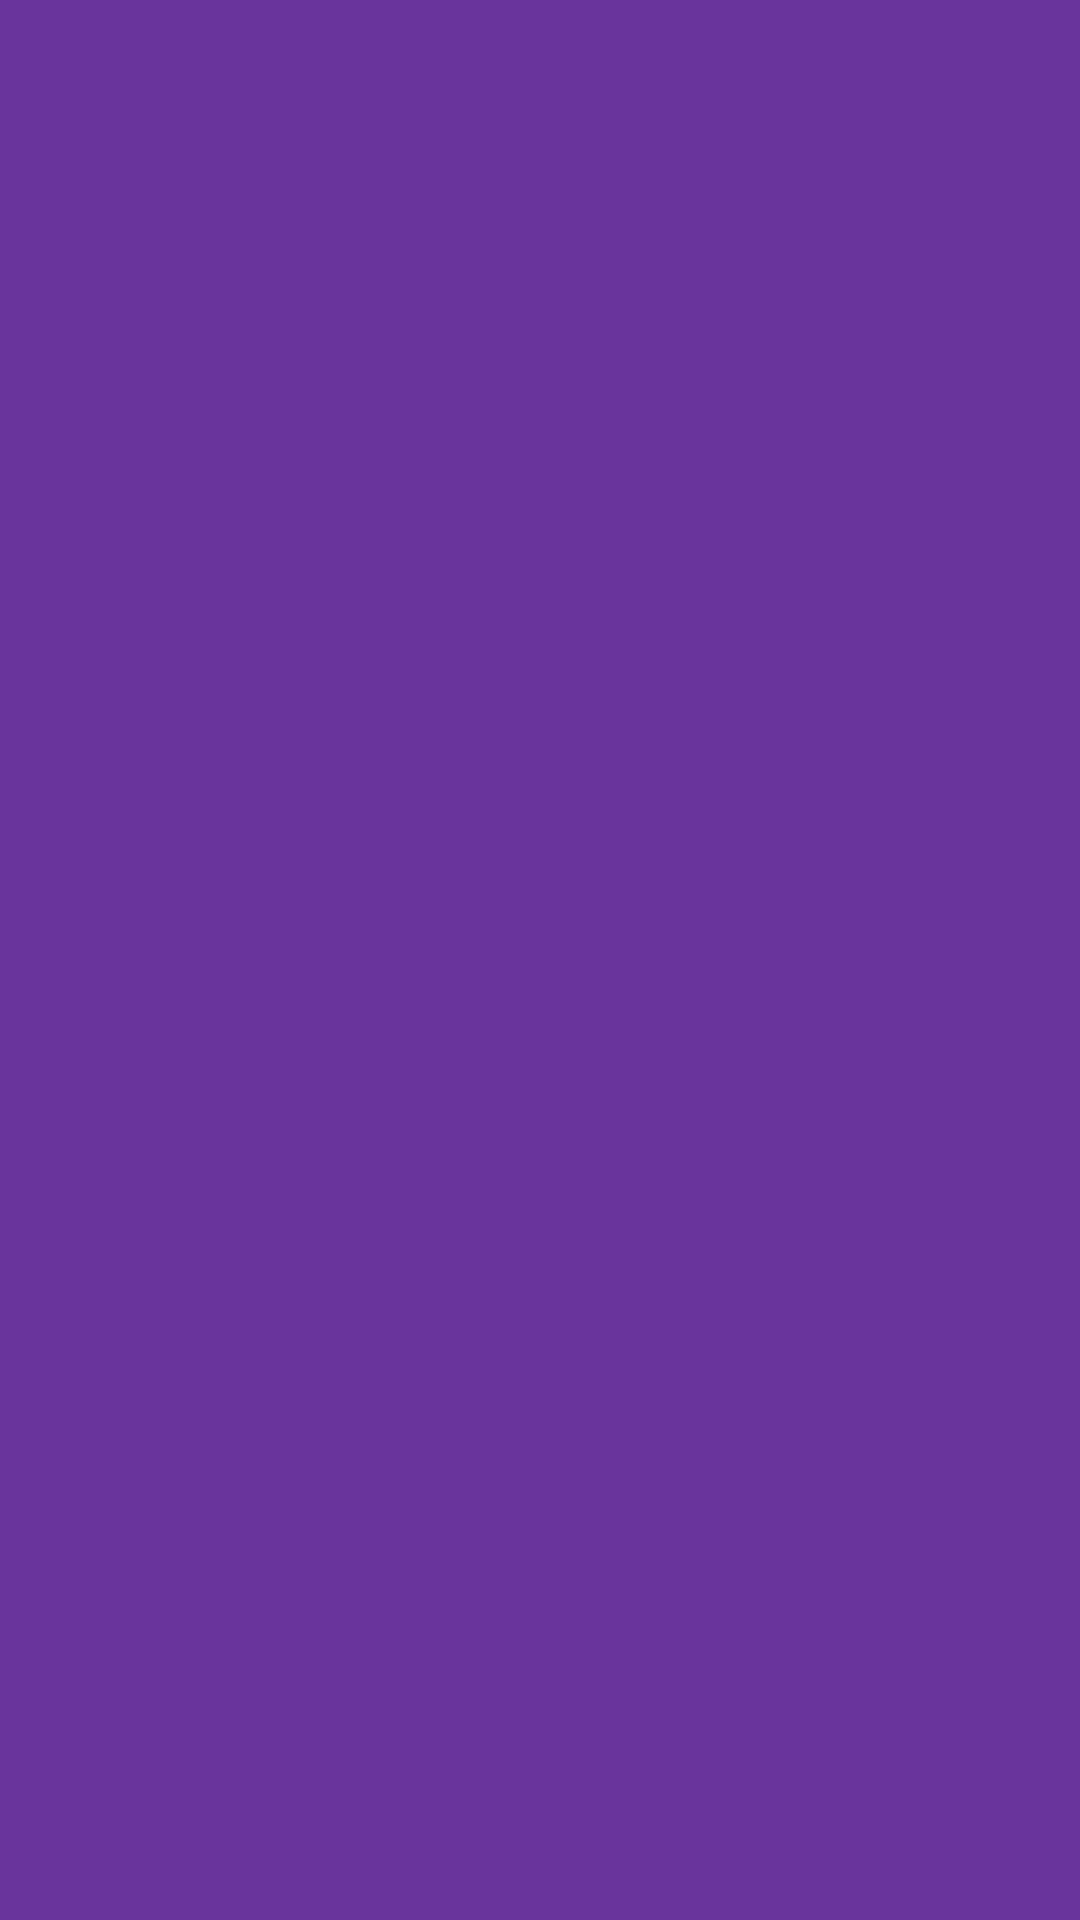 1080x1920 Purple Heart Solid Color Background